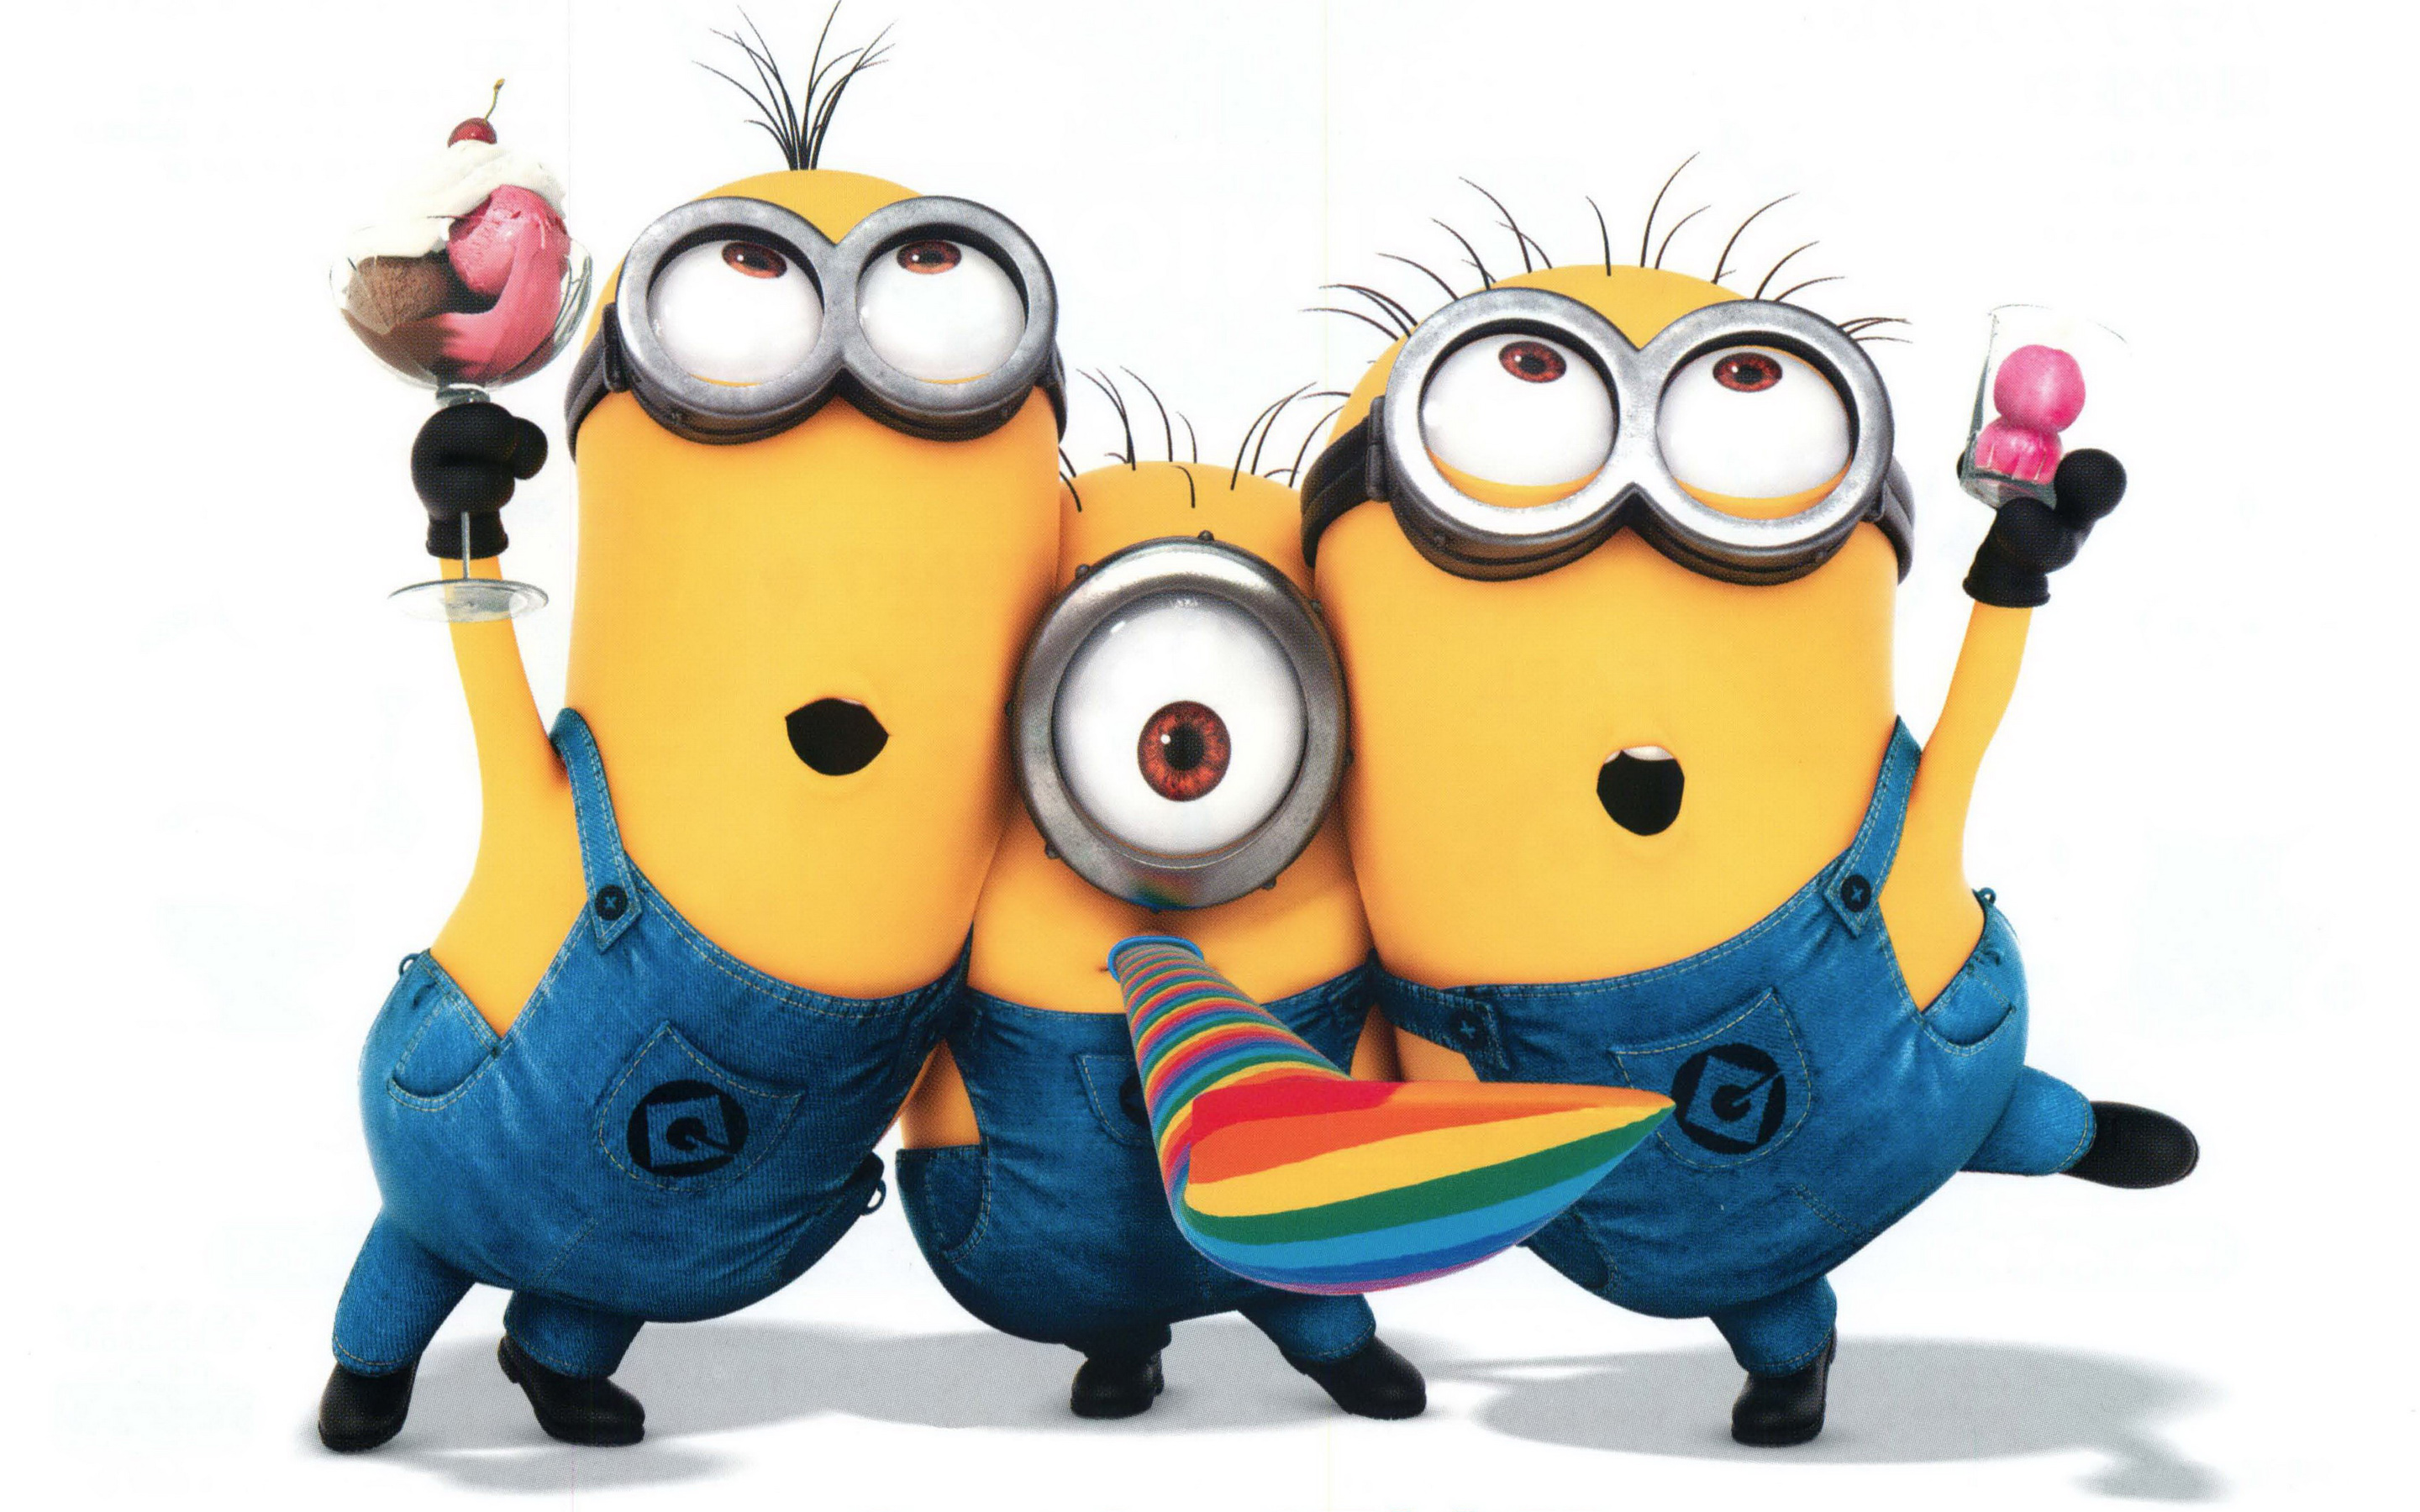 Despicable Me 2 Minions Pictures Movie Wallpapers Facebook Cover Photos besides Humanized TAWoG 344479629 also Text Effects Facebook Status Emoticons Symbols Picture Effects Smiley likewise File 718smiley furthermore Defense Elf Shelf. on old cartoons characters inanimate in